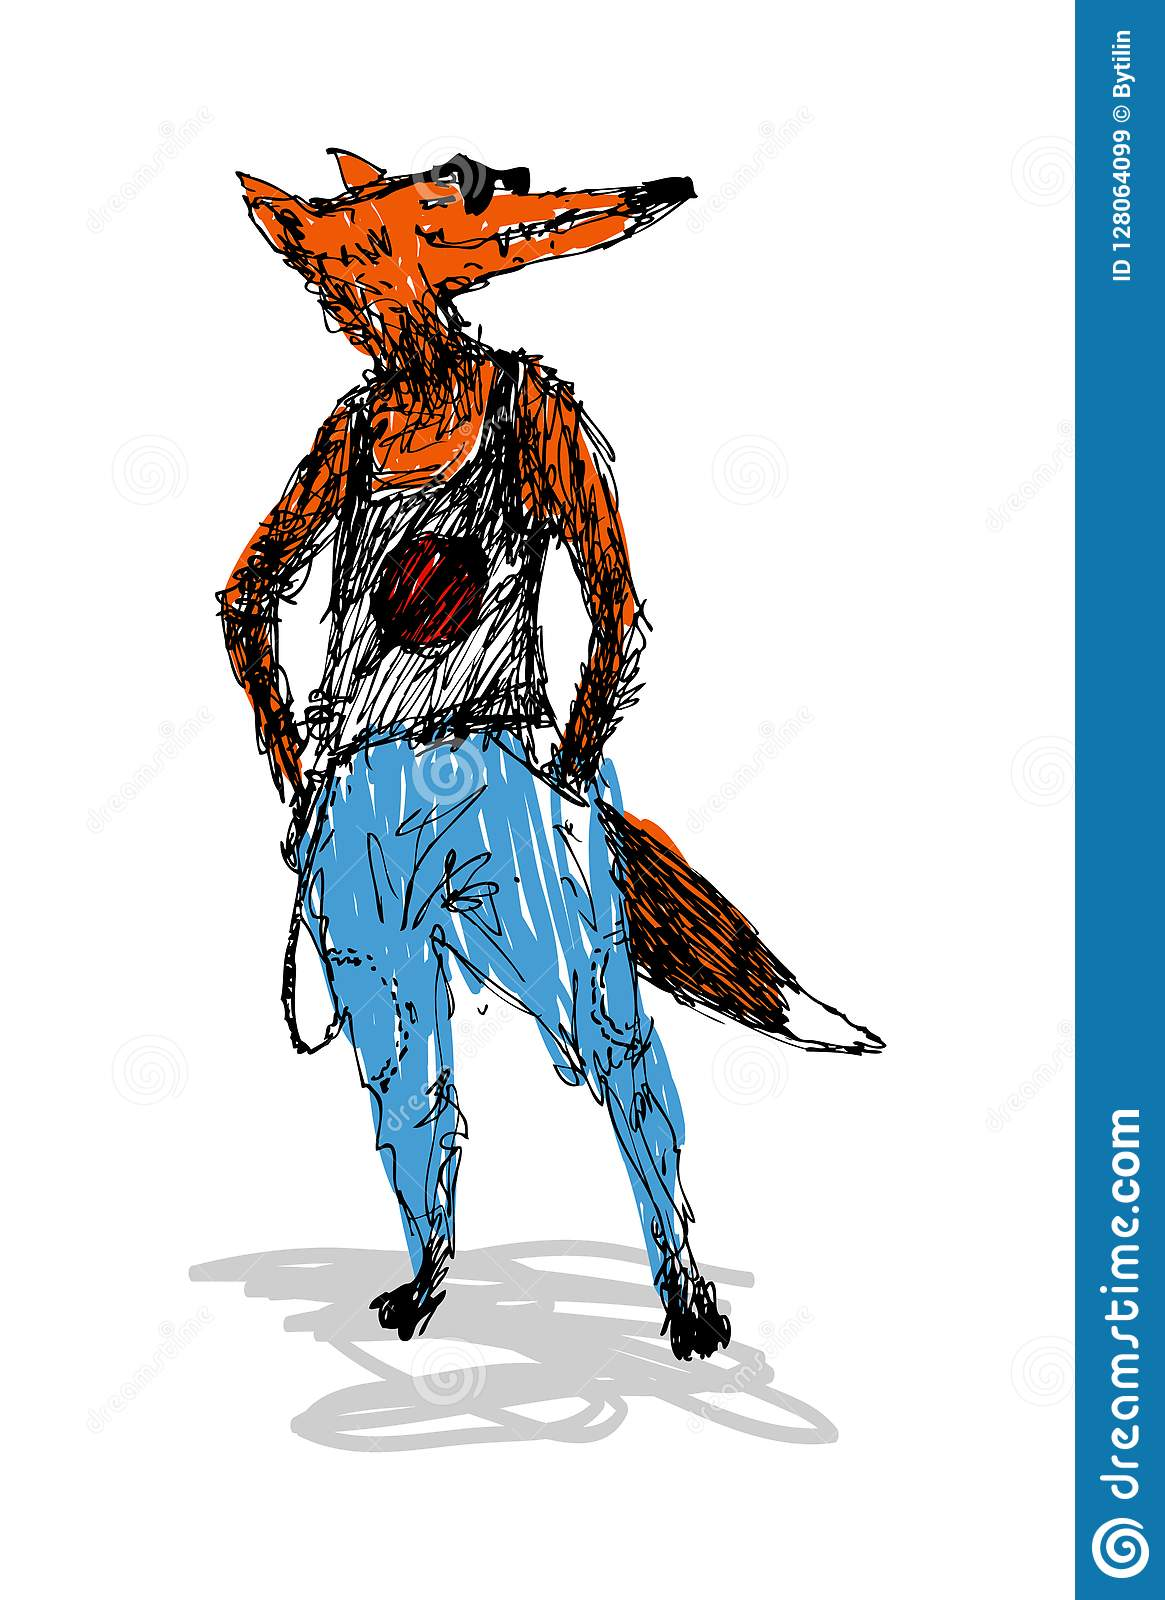 Fashion fox, in a T-shirt and jeans. Perfect for fashion publications or other publications.